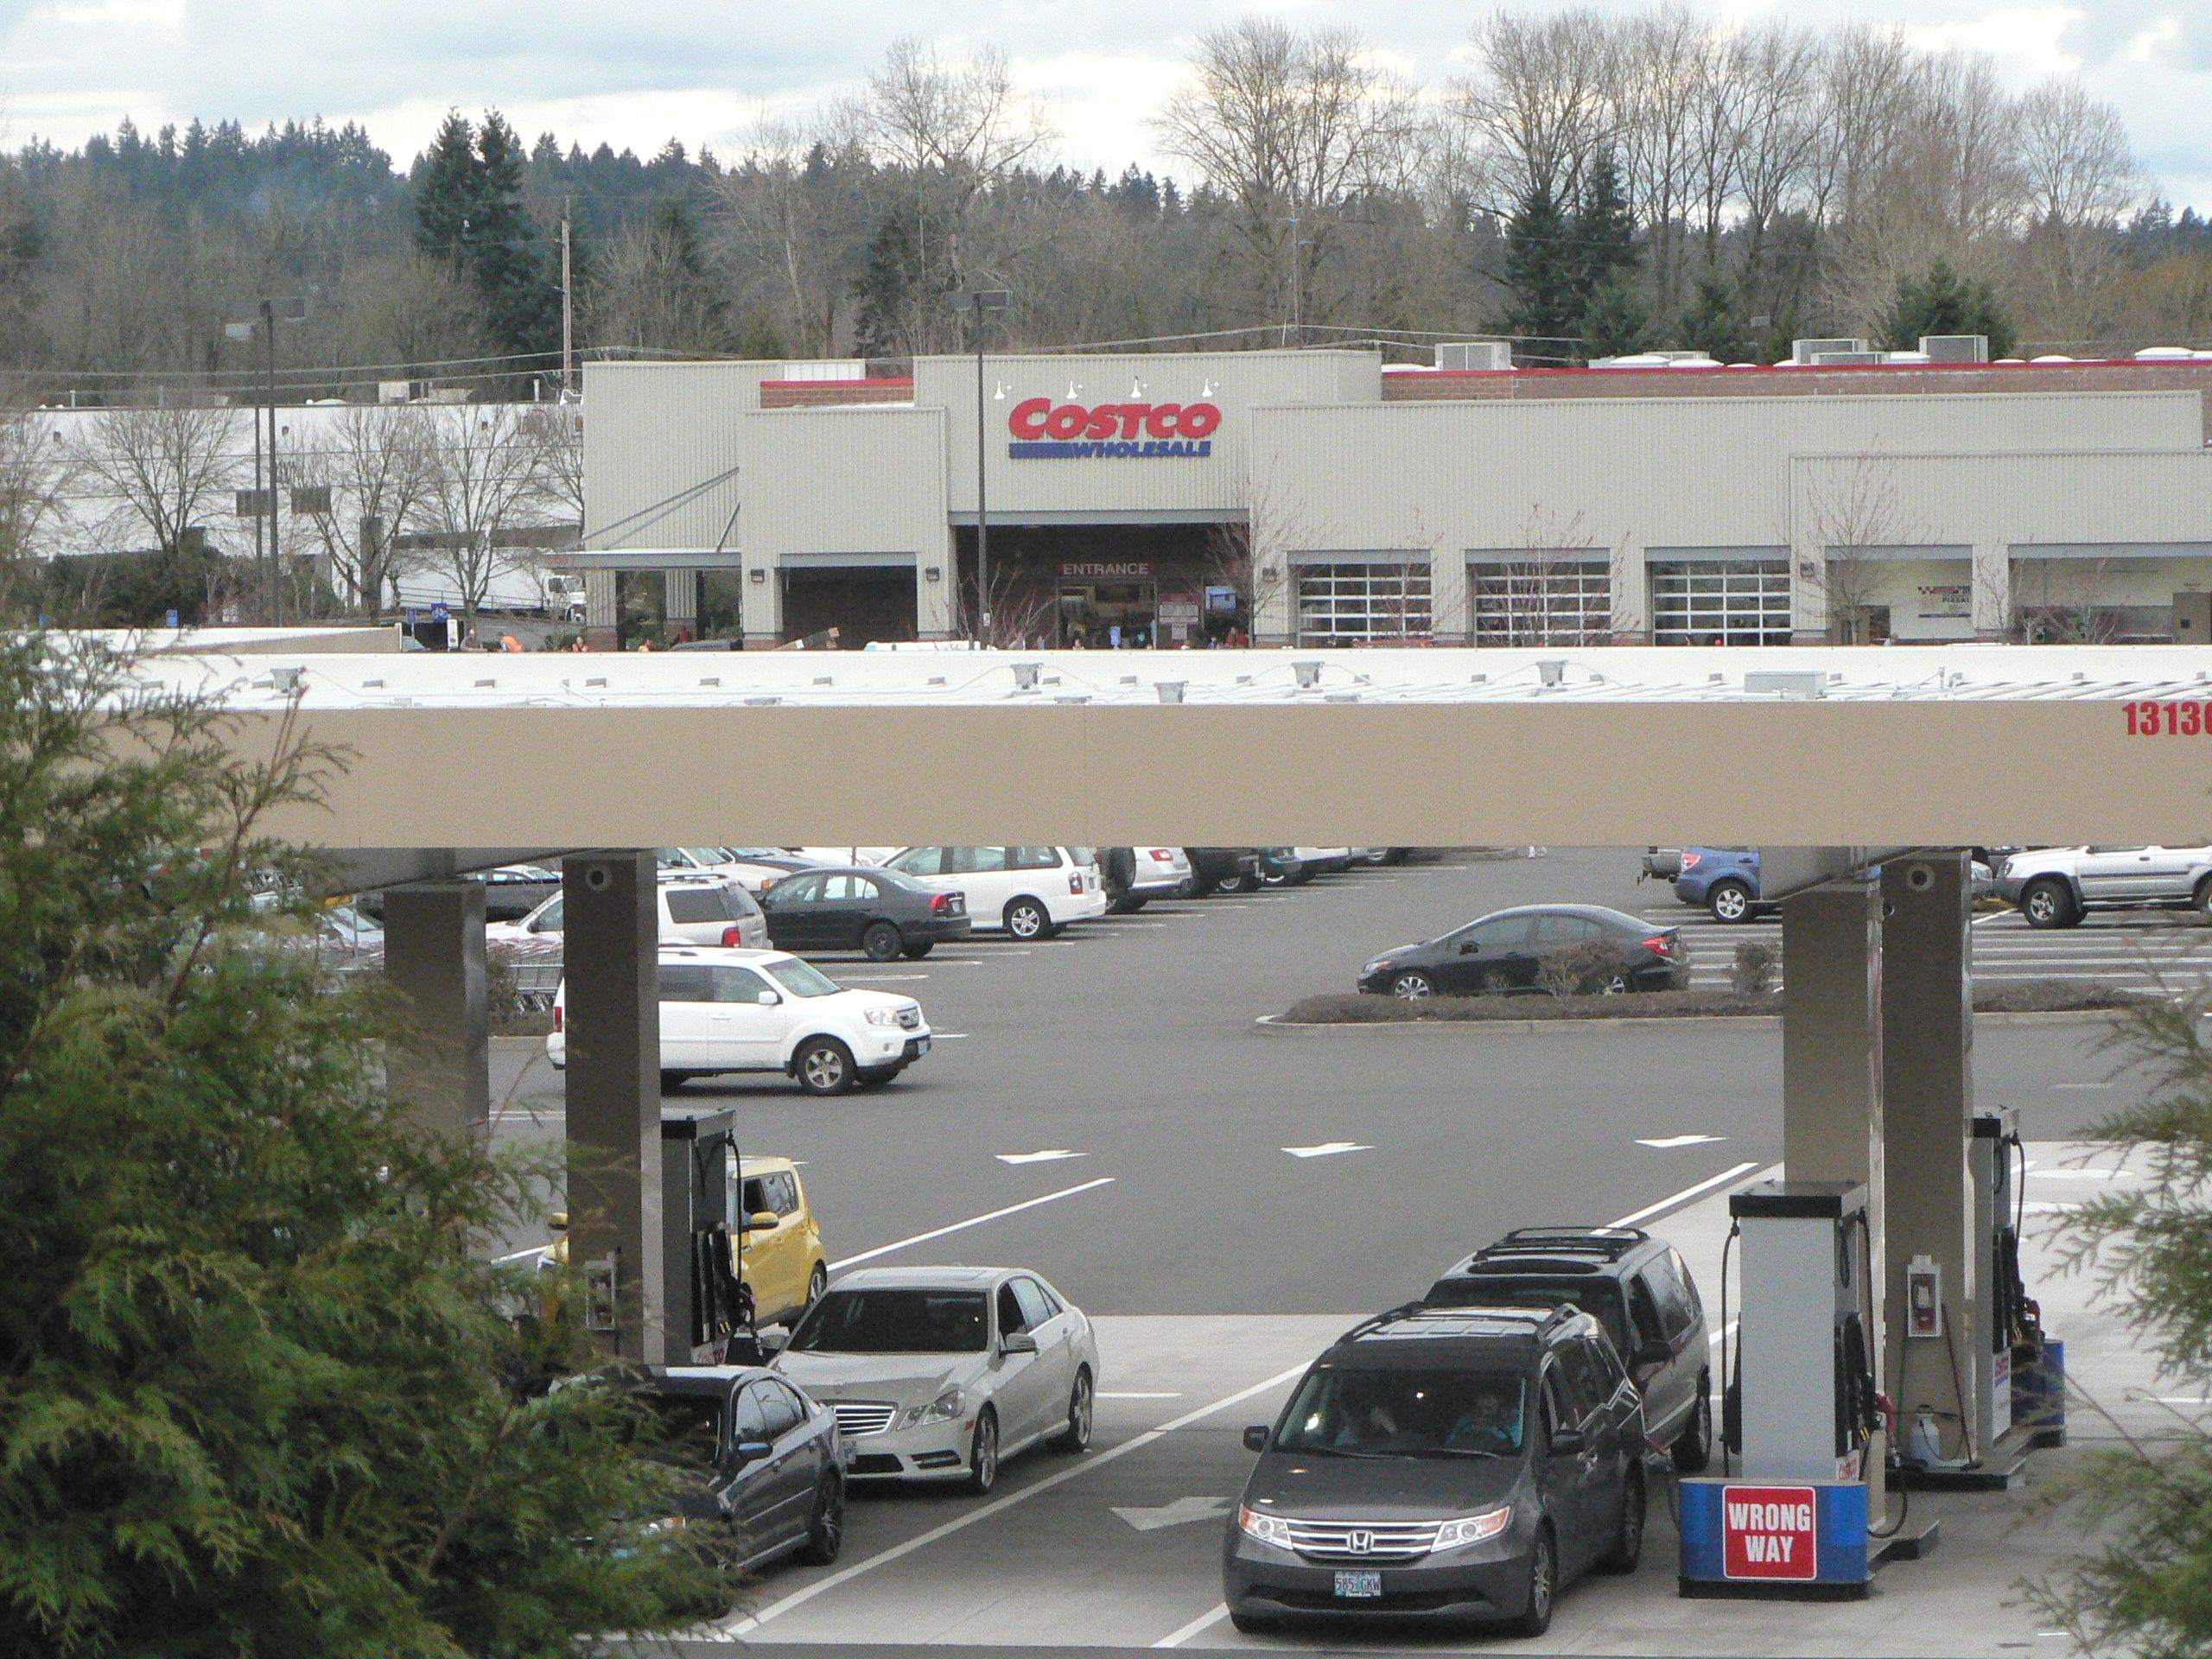 Costco With Gas Station In Clackamas Or Gas Station Oregon